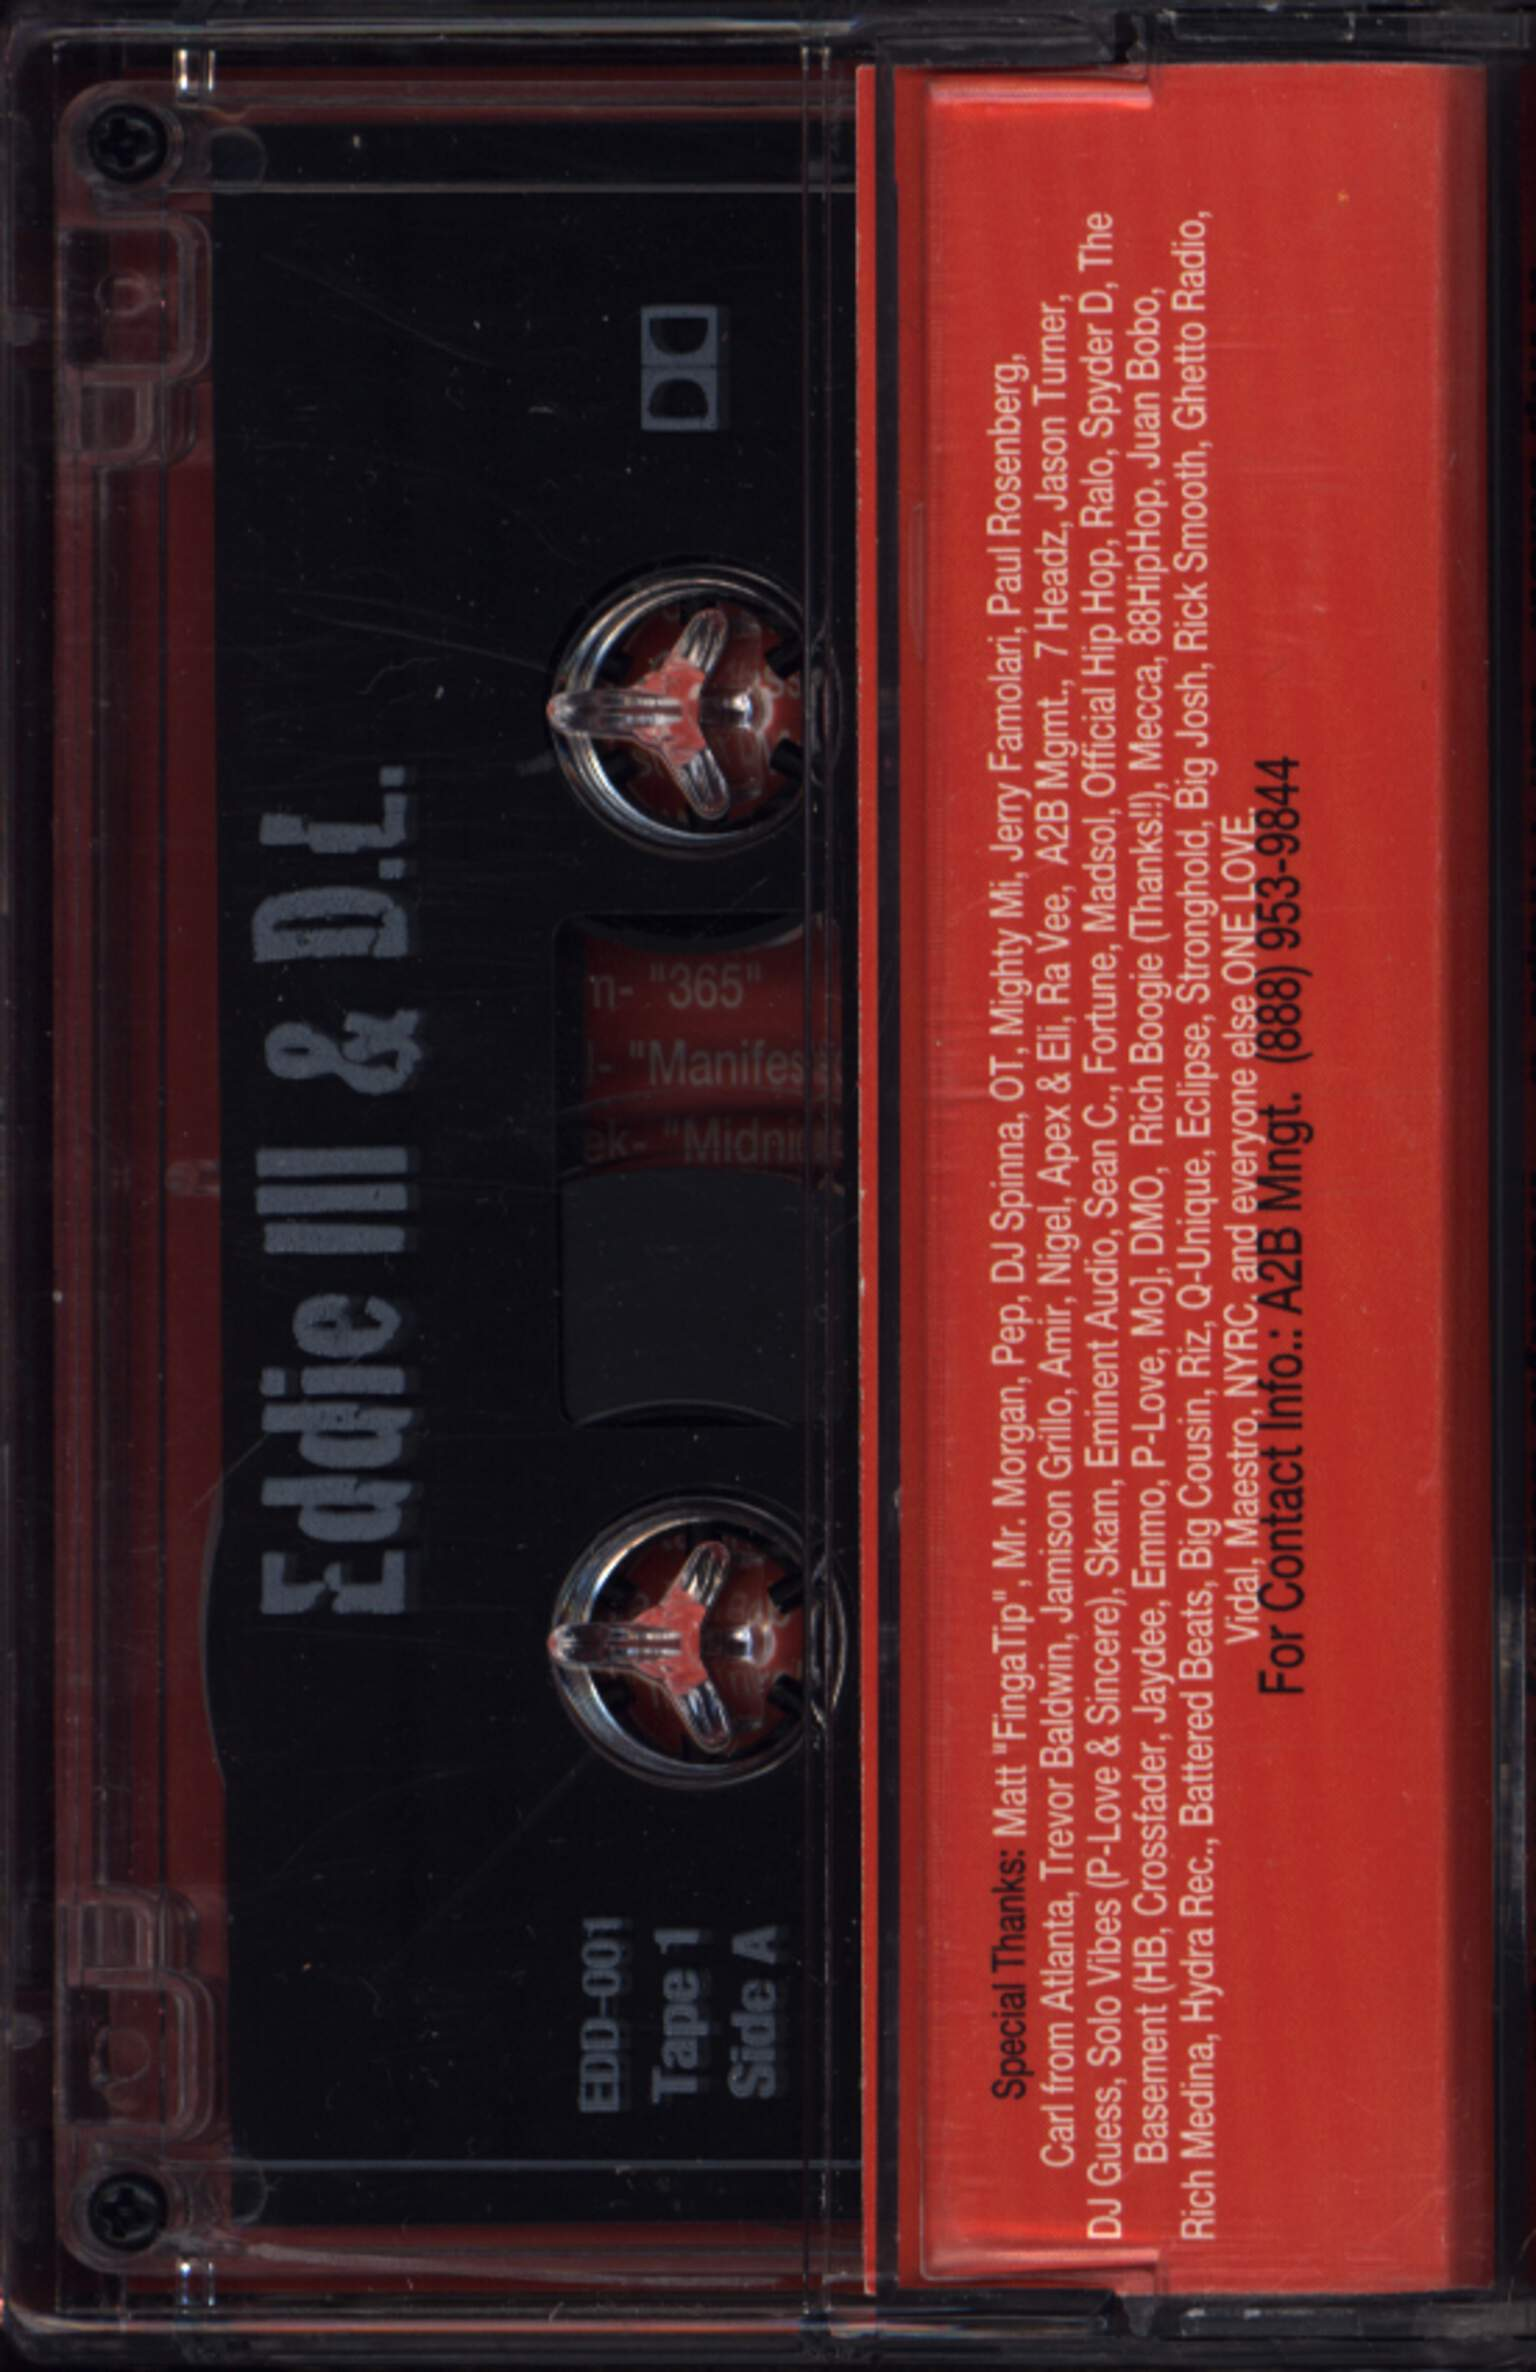 Eddie Ill And D.L.: A Trip Below, Compact Cassette